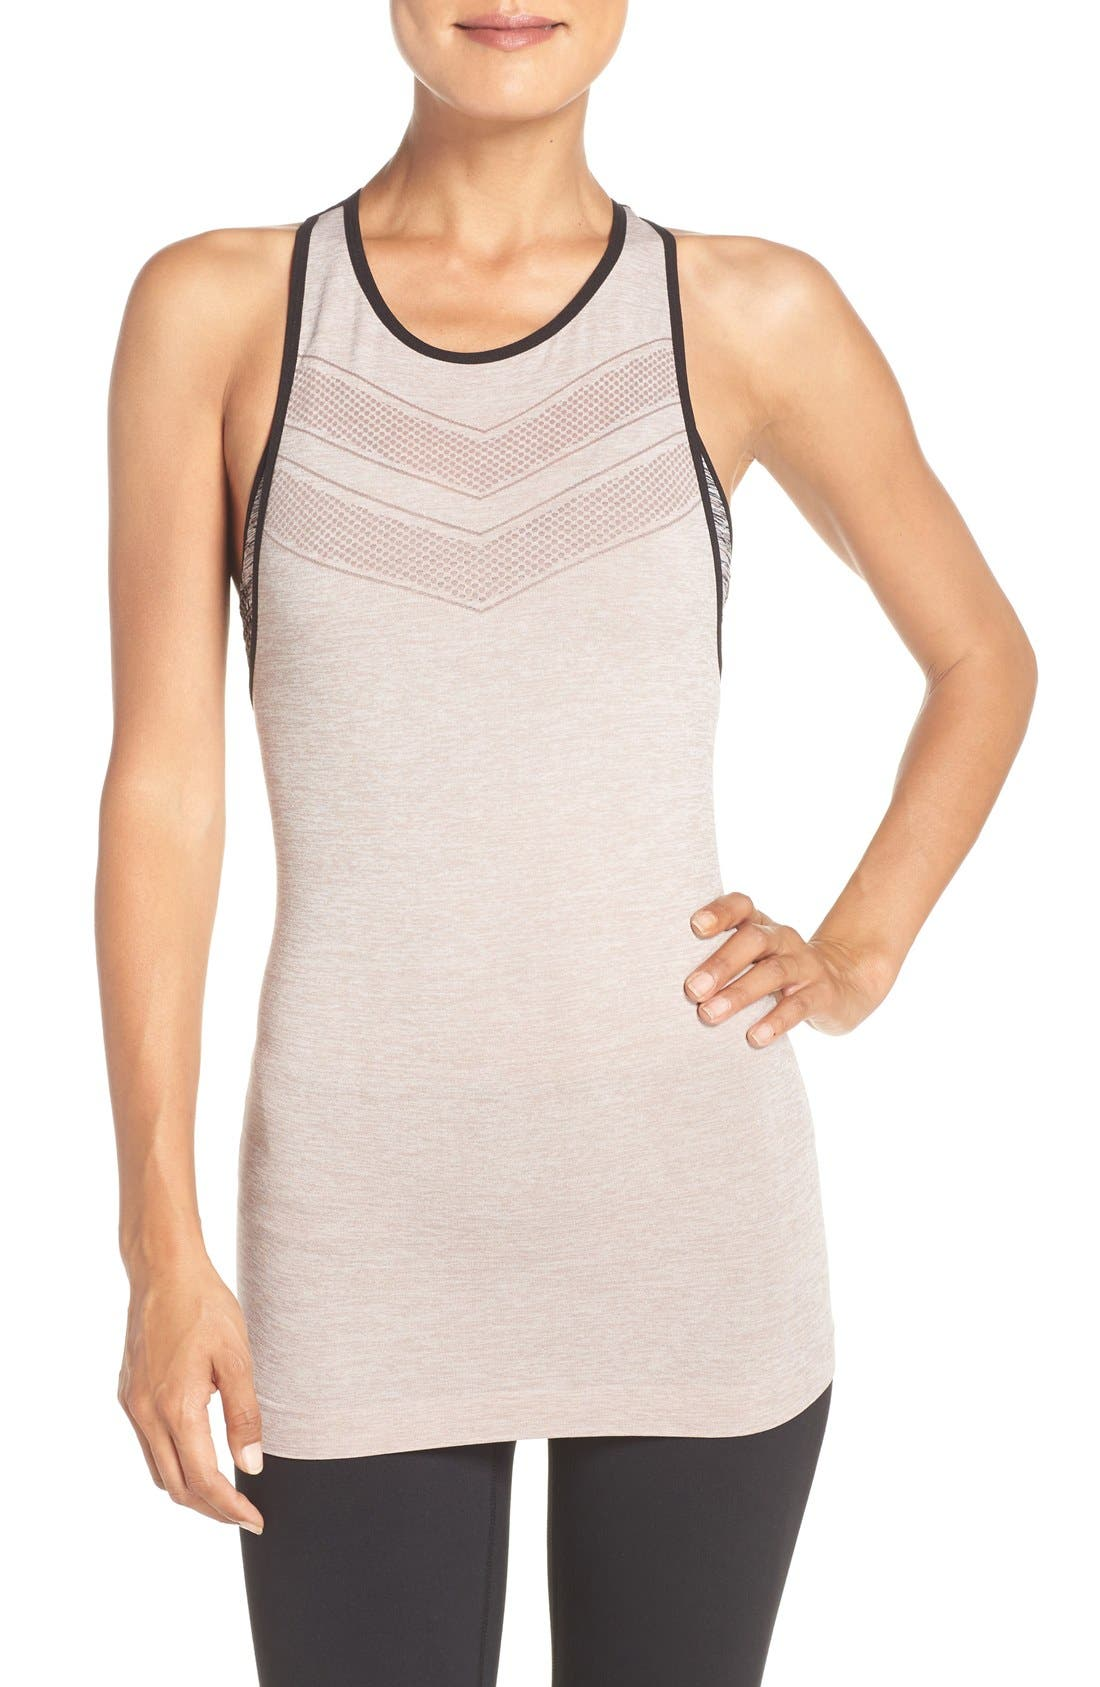 CLIMAWEAR 'Aim High' T-Back Tank